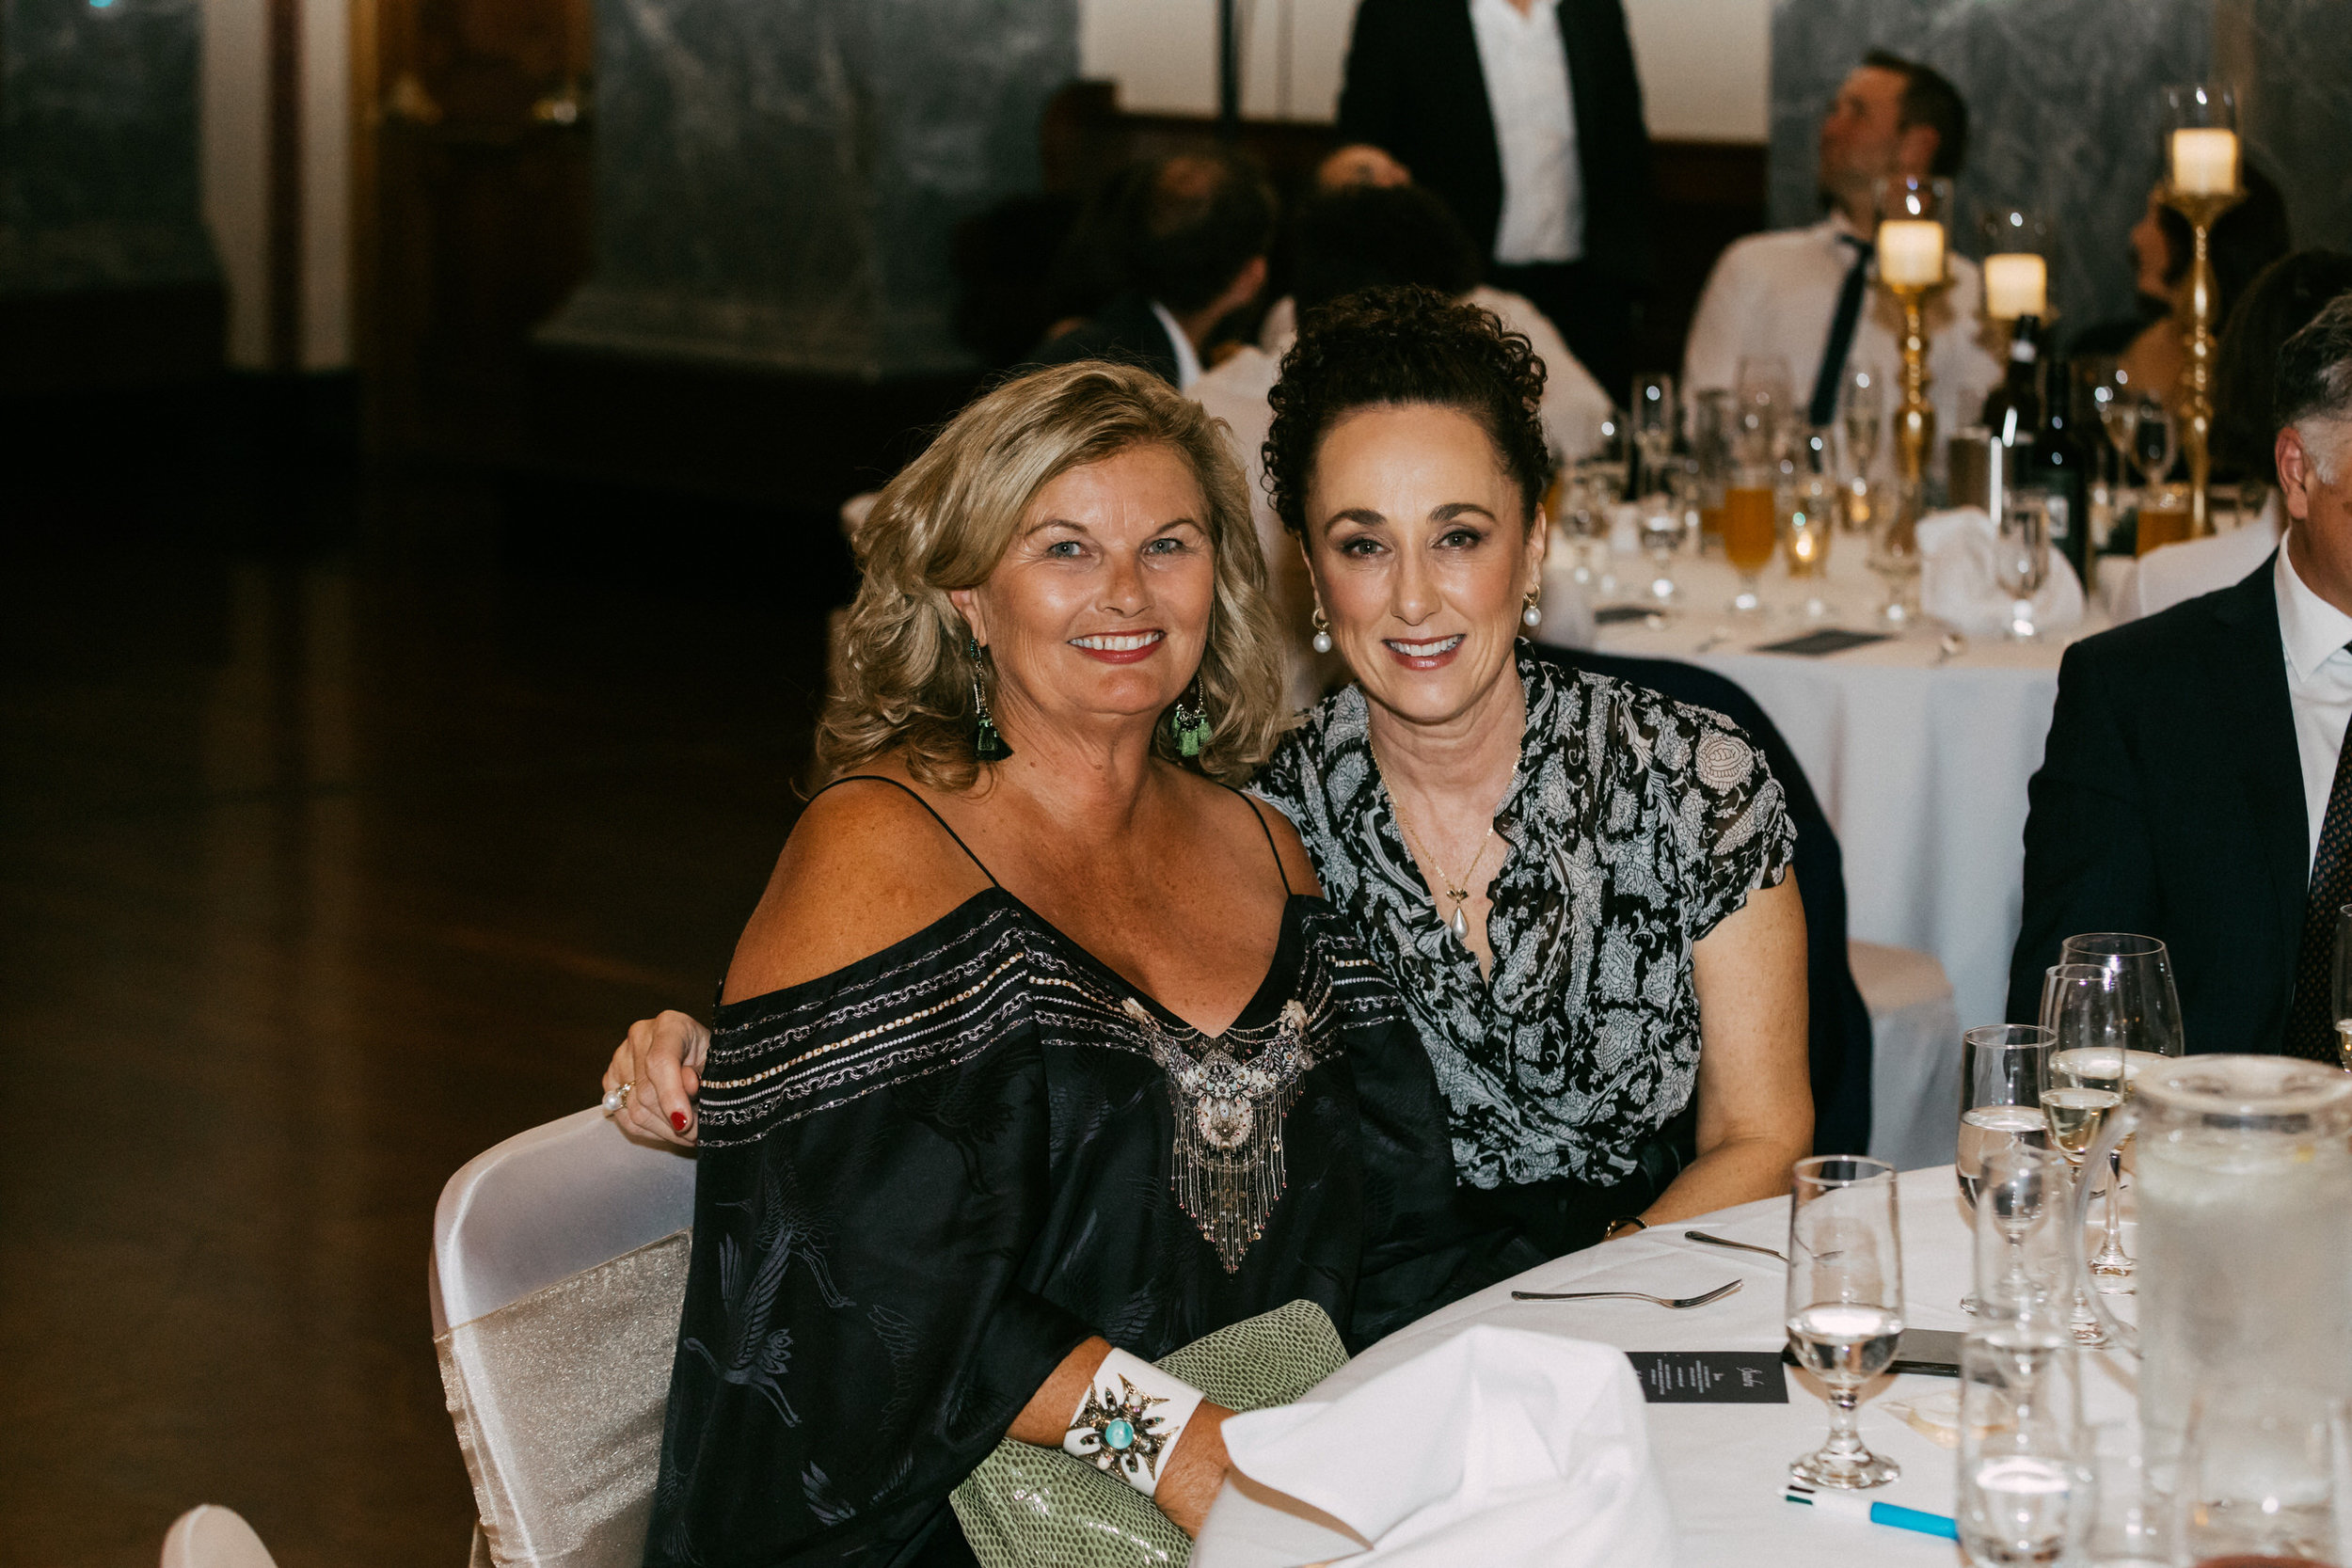 Adelaide Wedding 2019 179.jpg